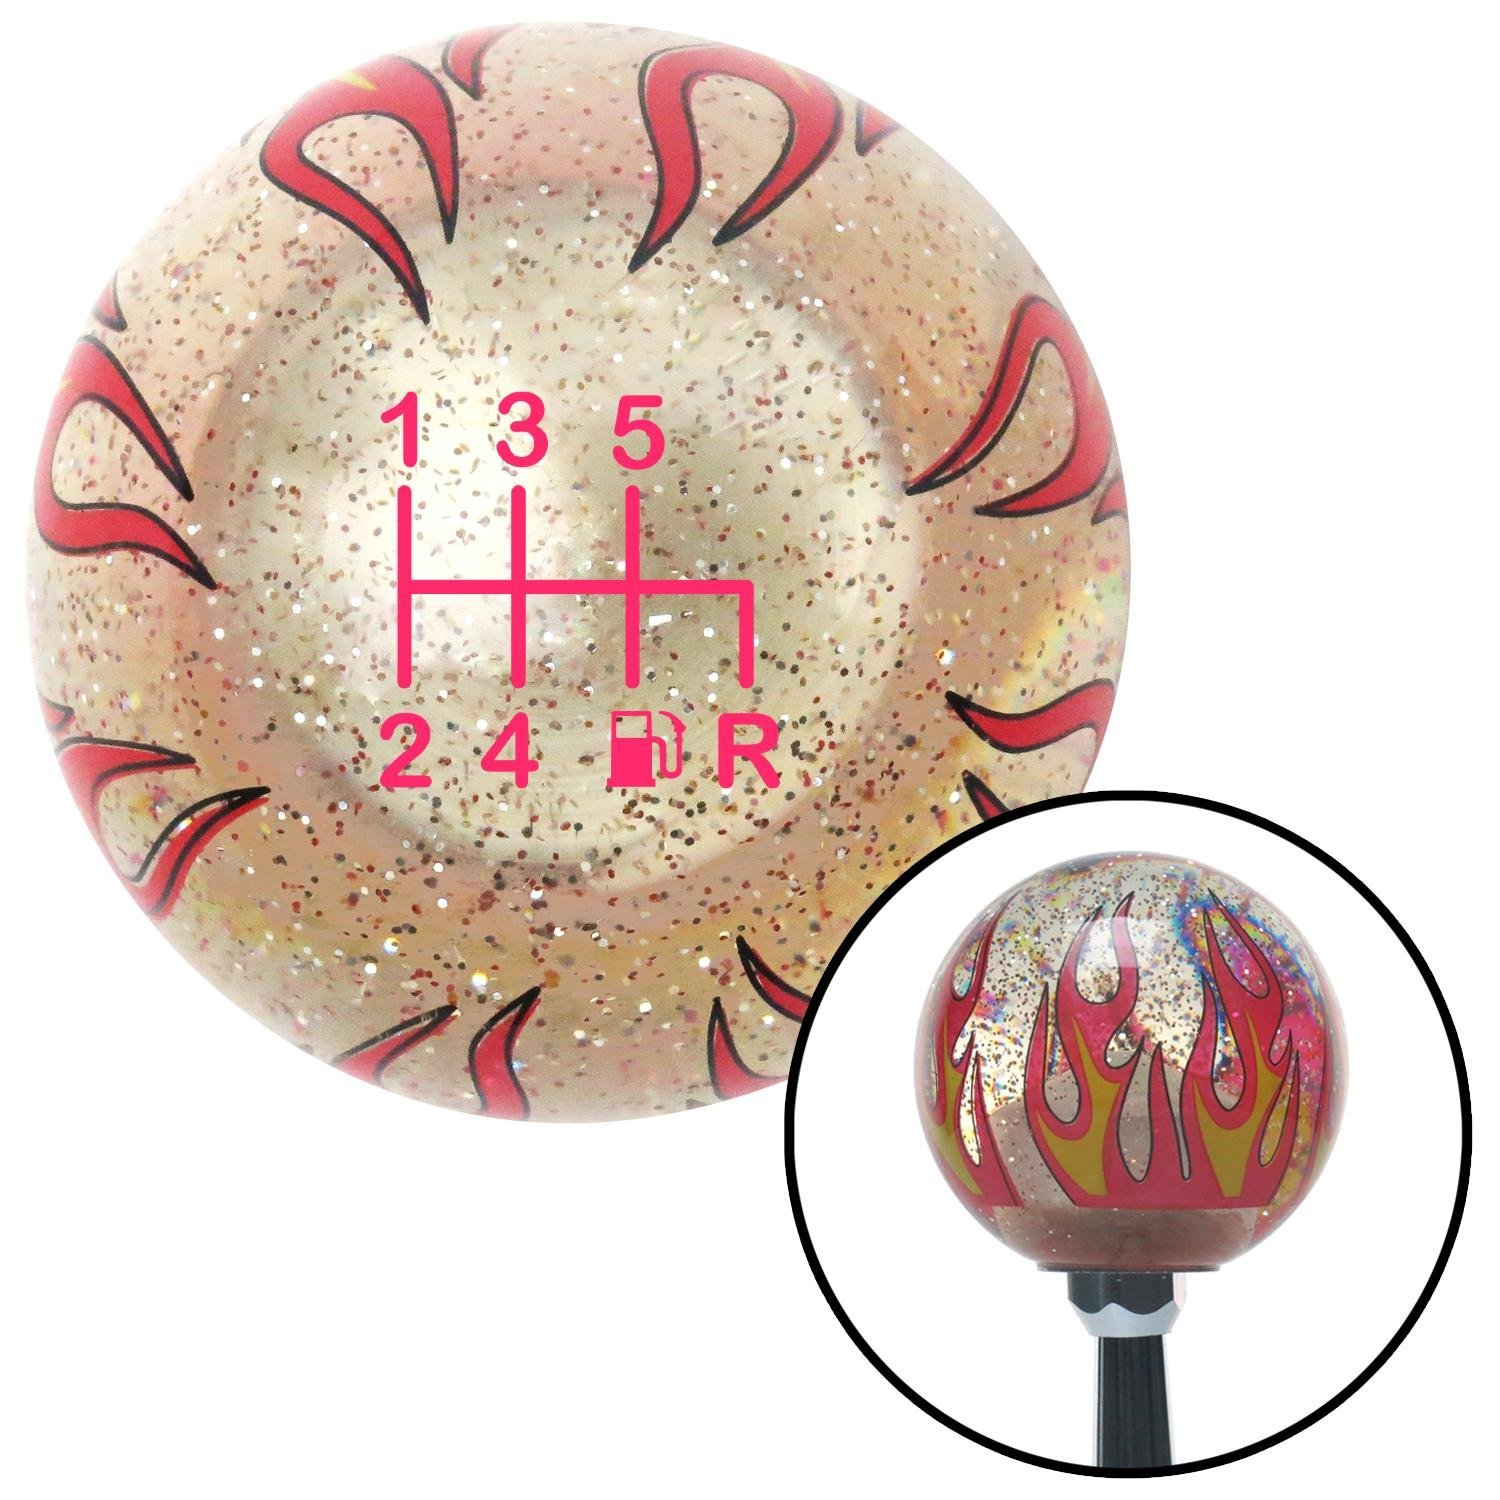 American Shifter 46021 Orange Metal Flake Shift Knob with 16mm x 1.5 Insert Yellow Felix The Cat Middle Finger